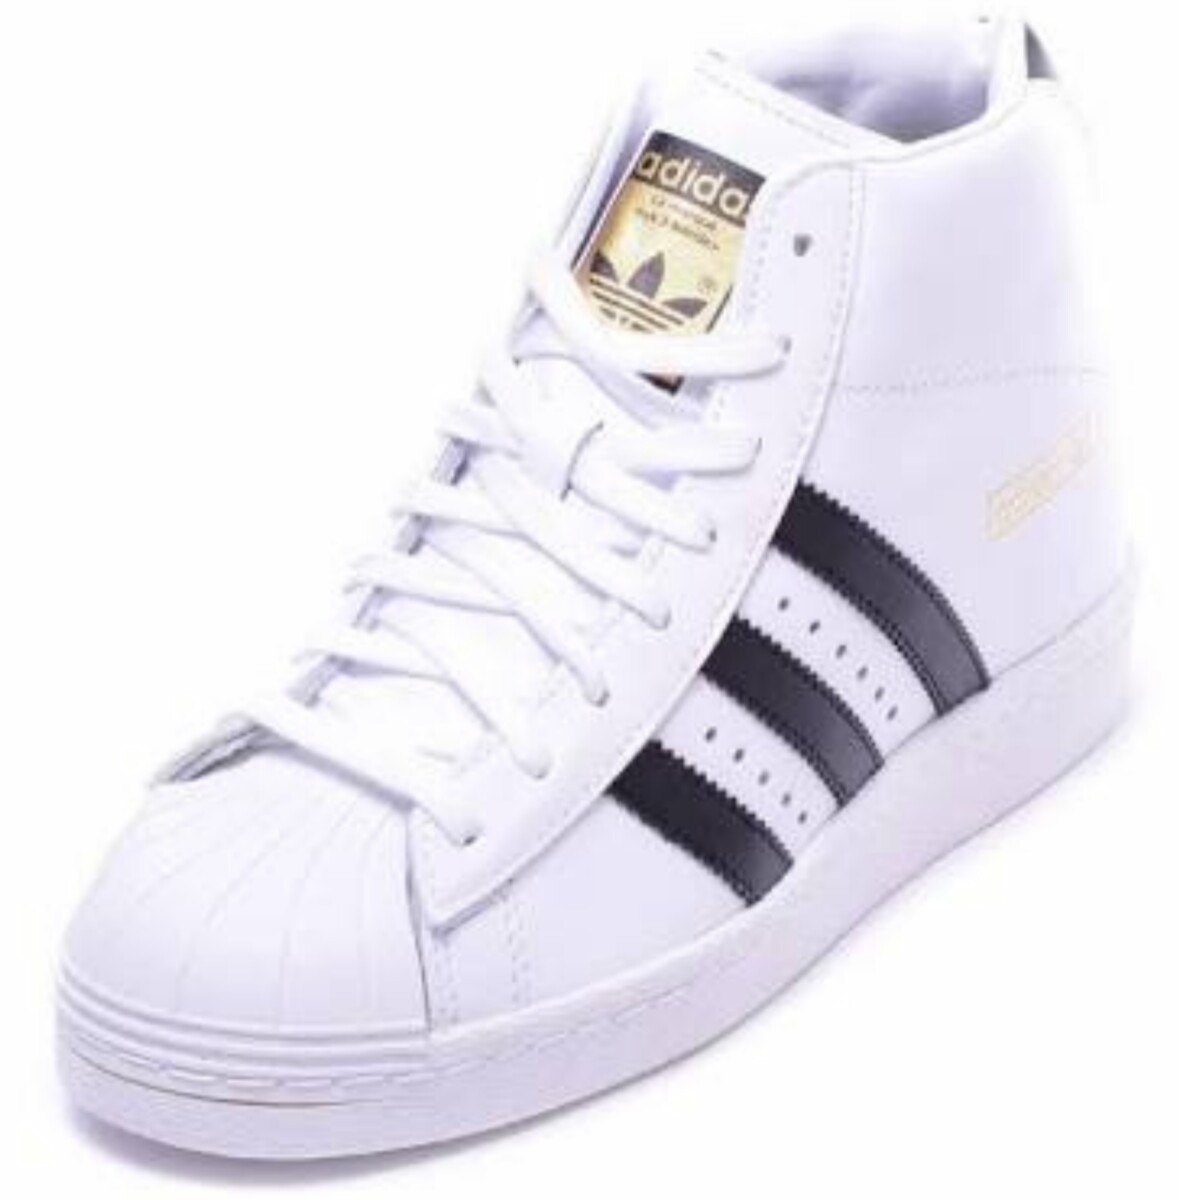 sale retailer 60052 0b384 ... where can i buy adidas superstar fundation gold bota choclo blanco negro.  cargando zoom.